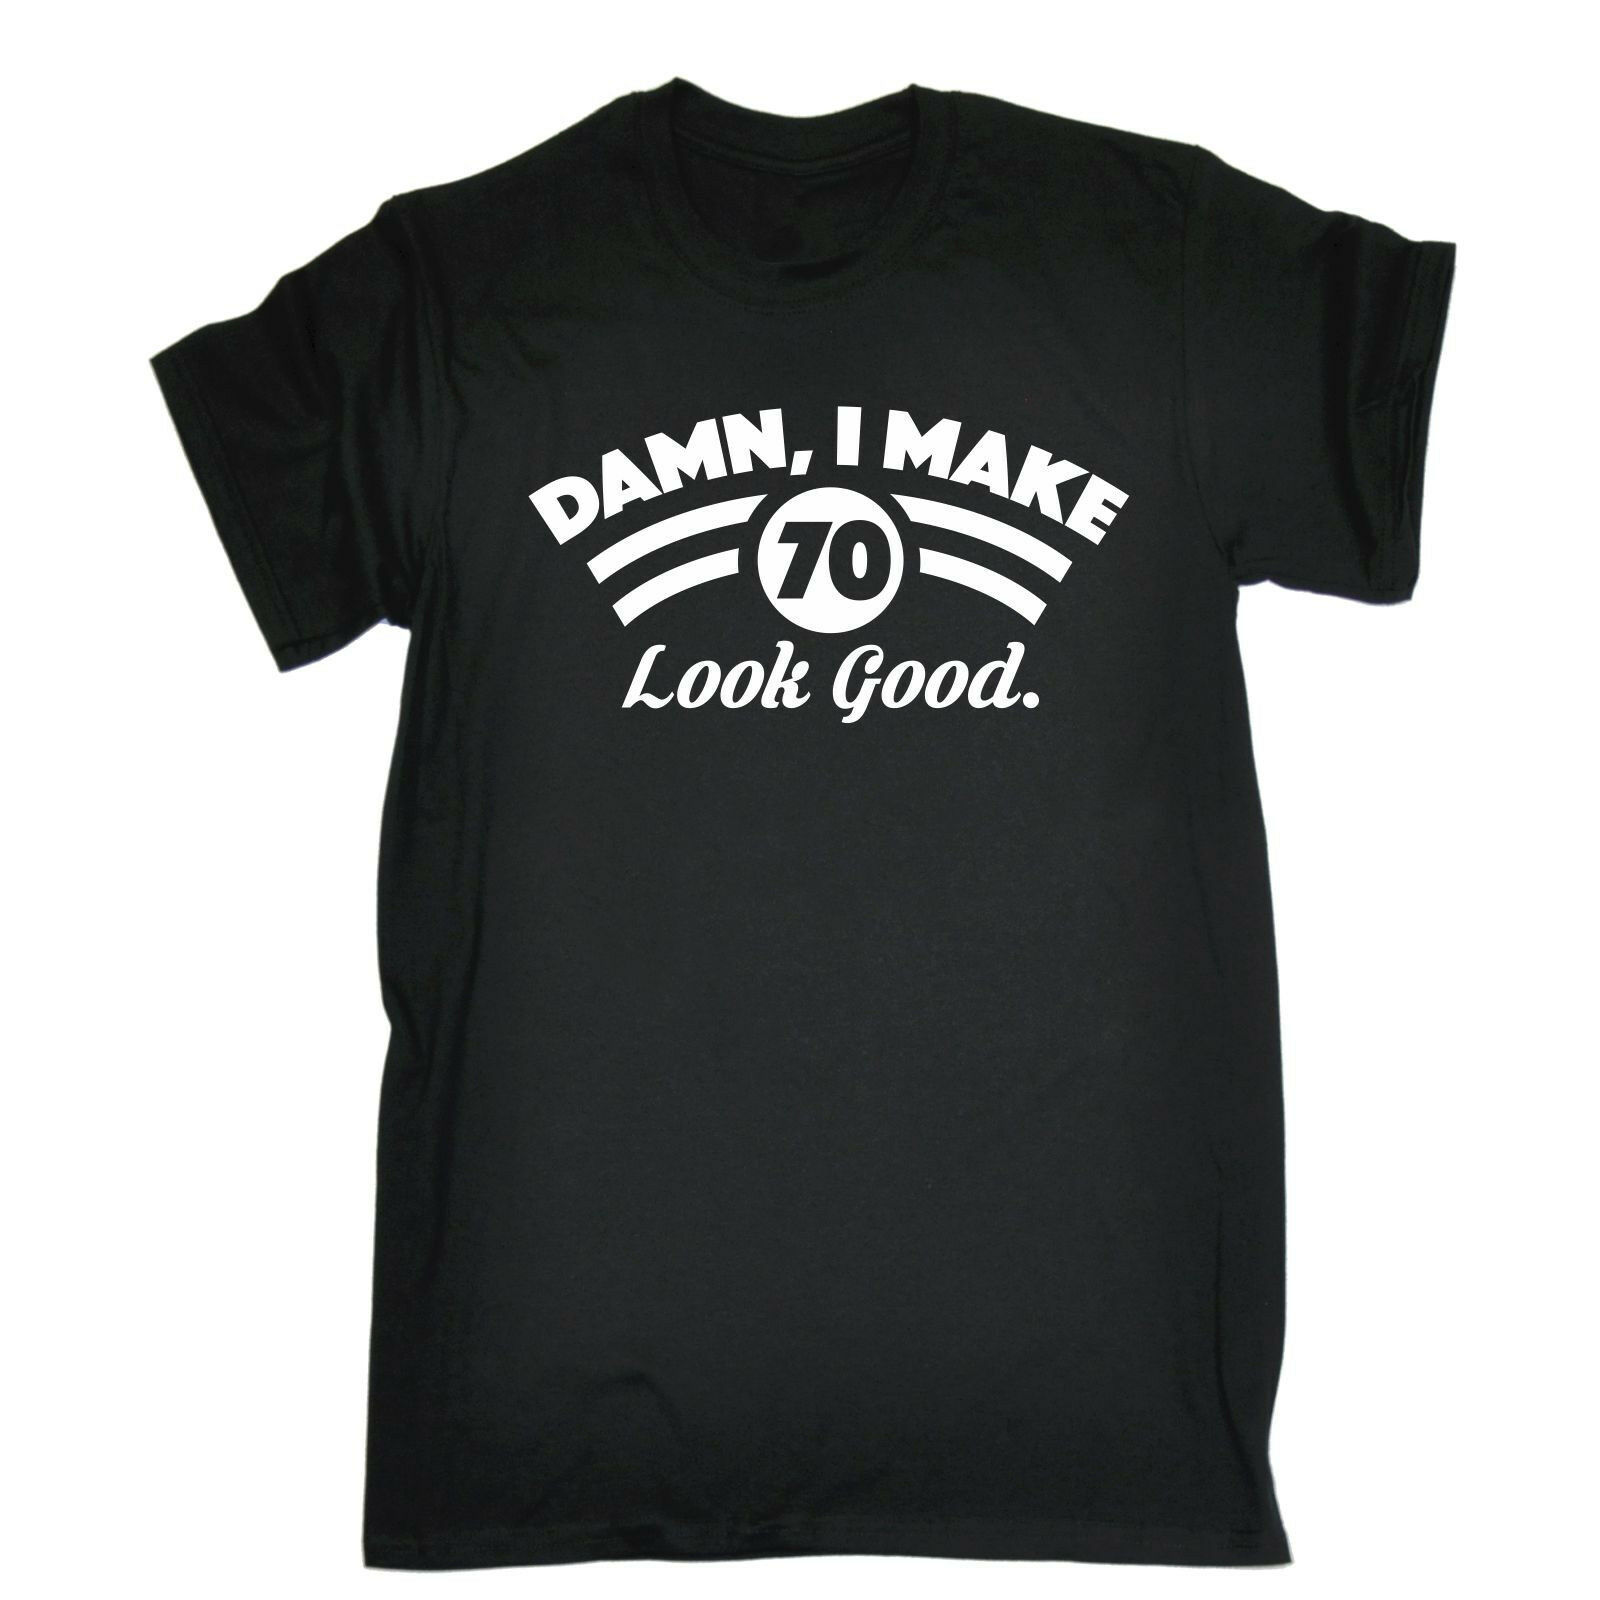 Damn I Make <font><b>70</b></font> Look Good T-<font><b>SHIRT</b></font> Old Dad Mum Top Funny Present <font><b>birthday</b></font> gift 2019 fashion t <font><b>shirt</b></font> free shipping cheap tee image